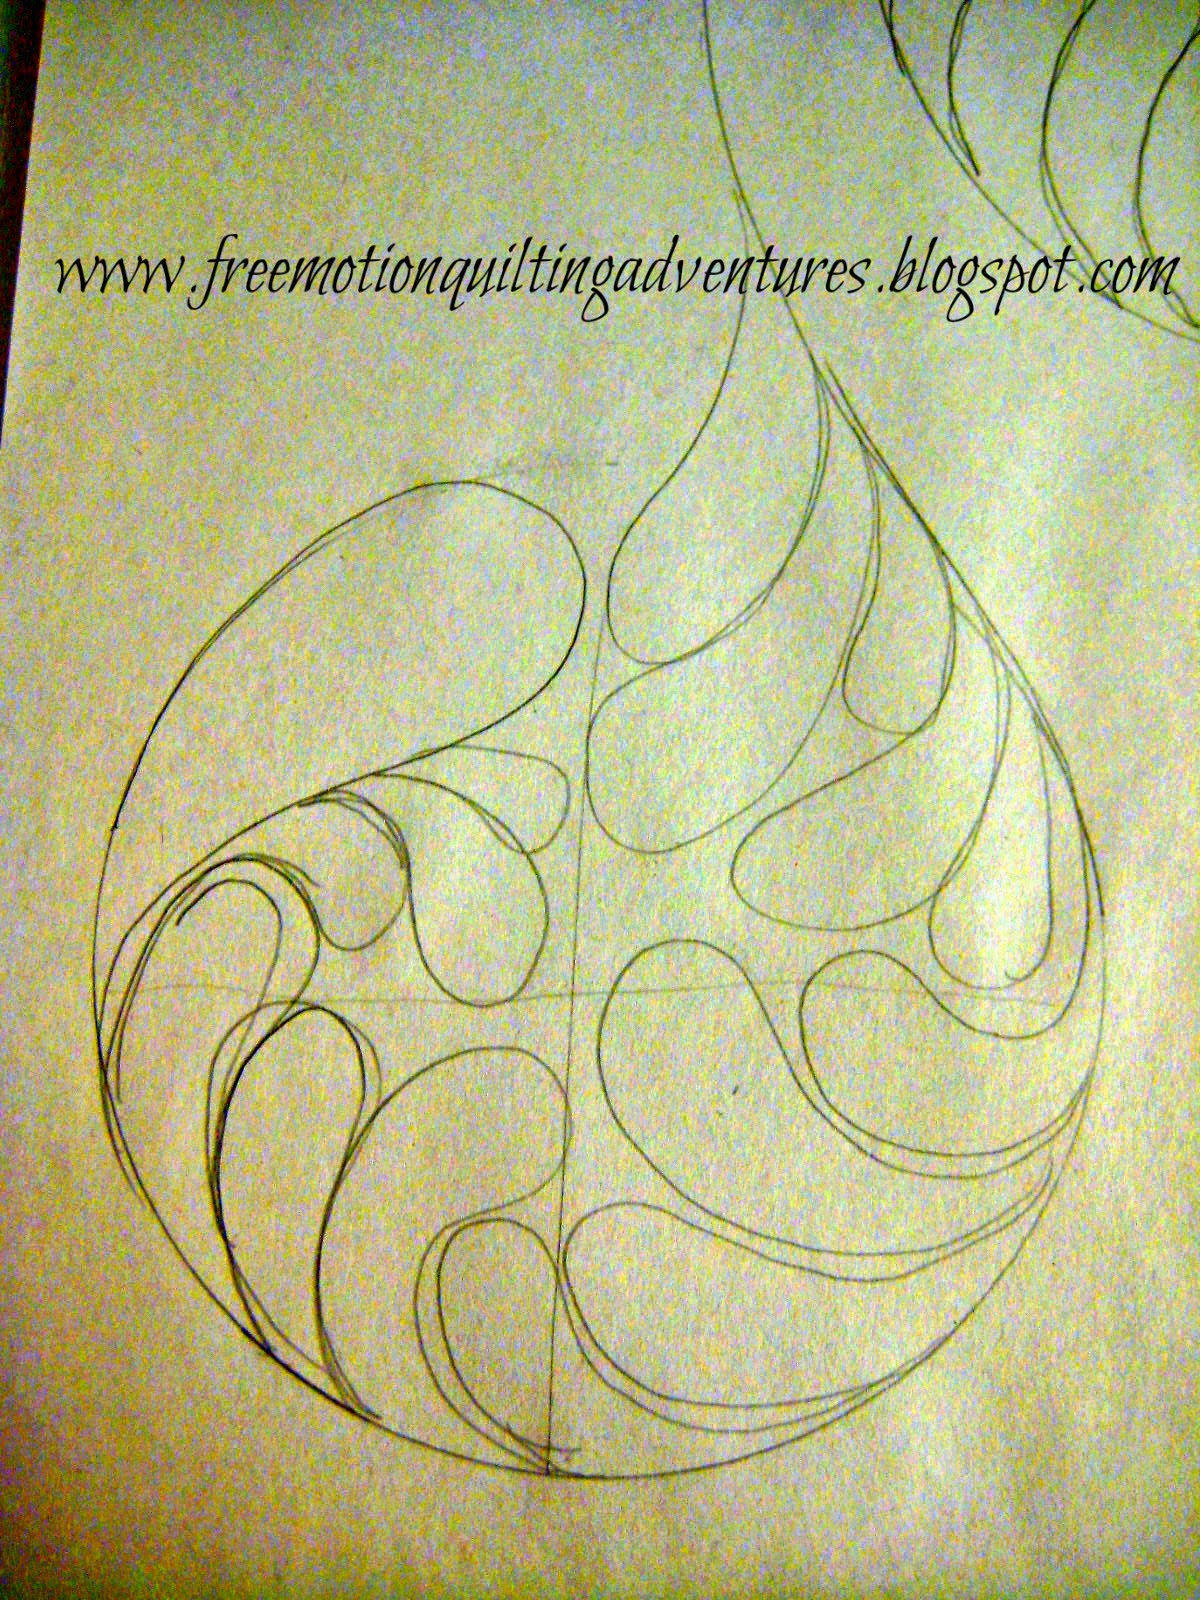 doodle the design before quilting